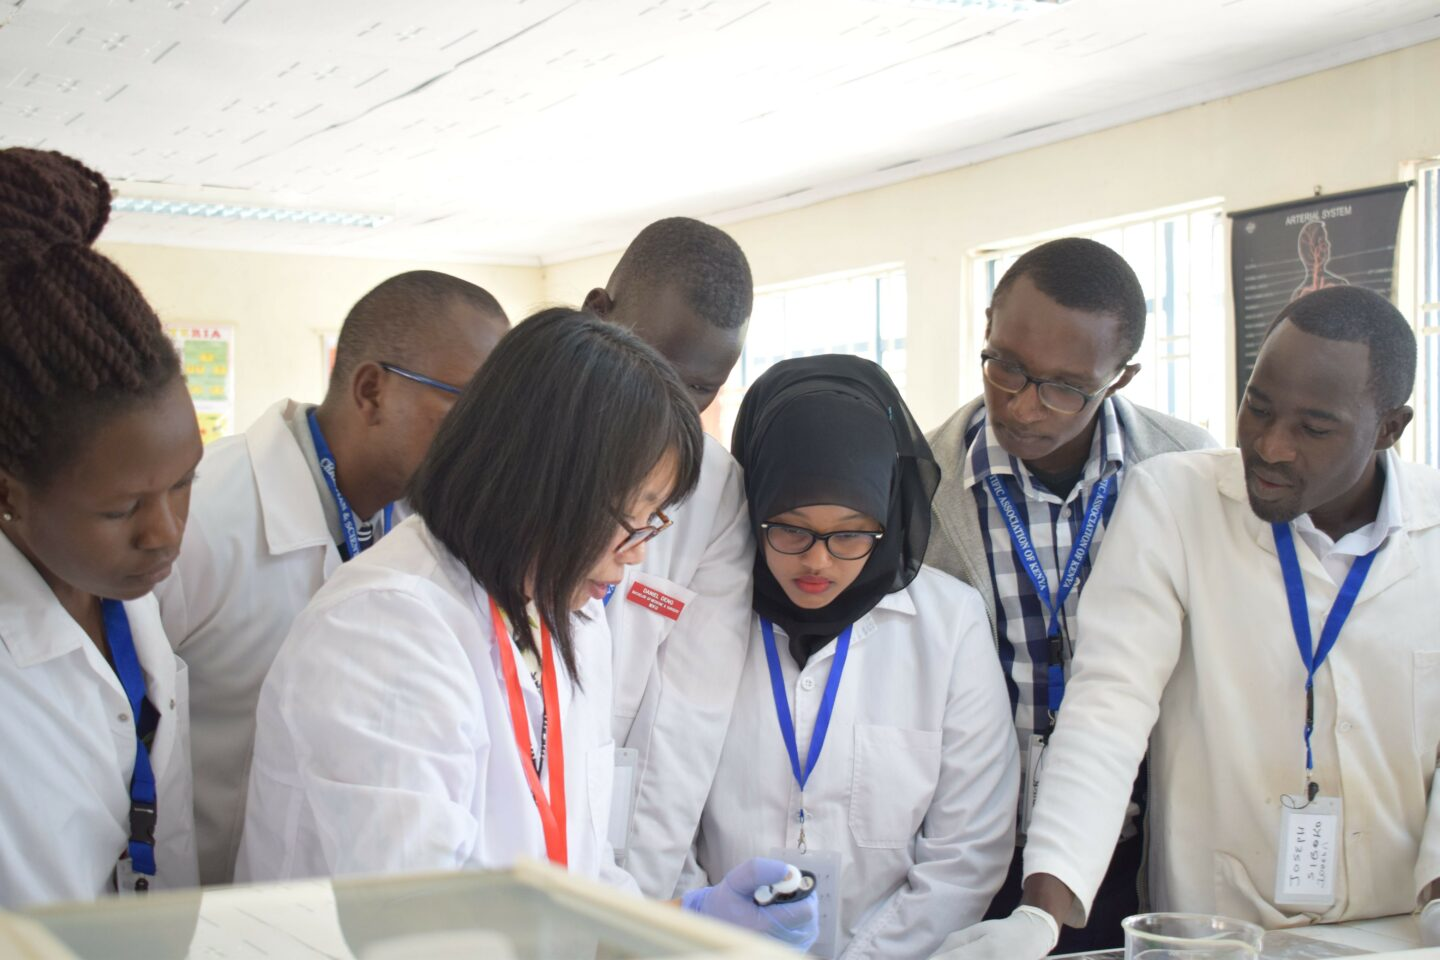 Kenya Newton Prize 2020 winning project researchers in the lab